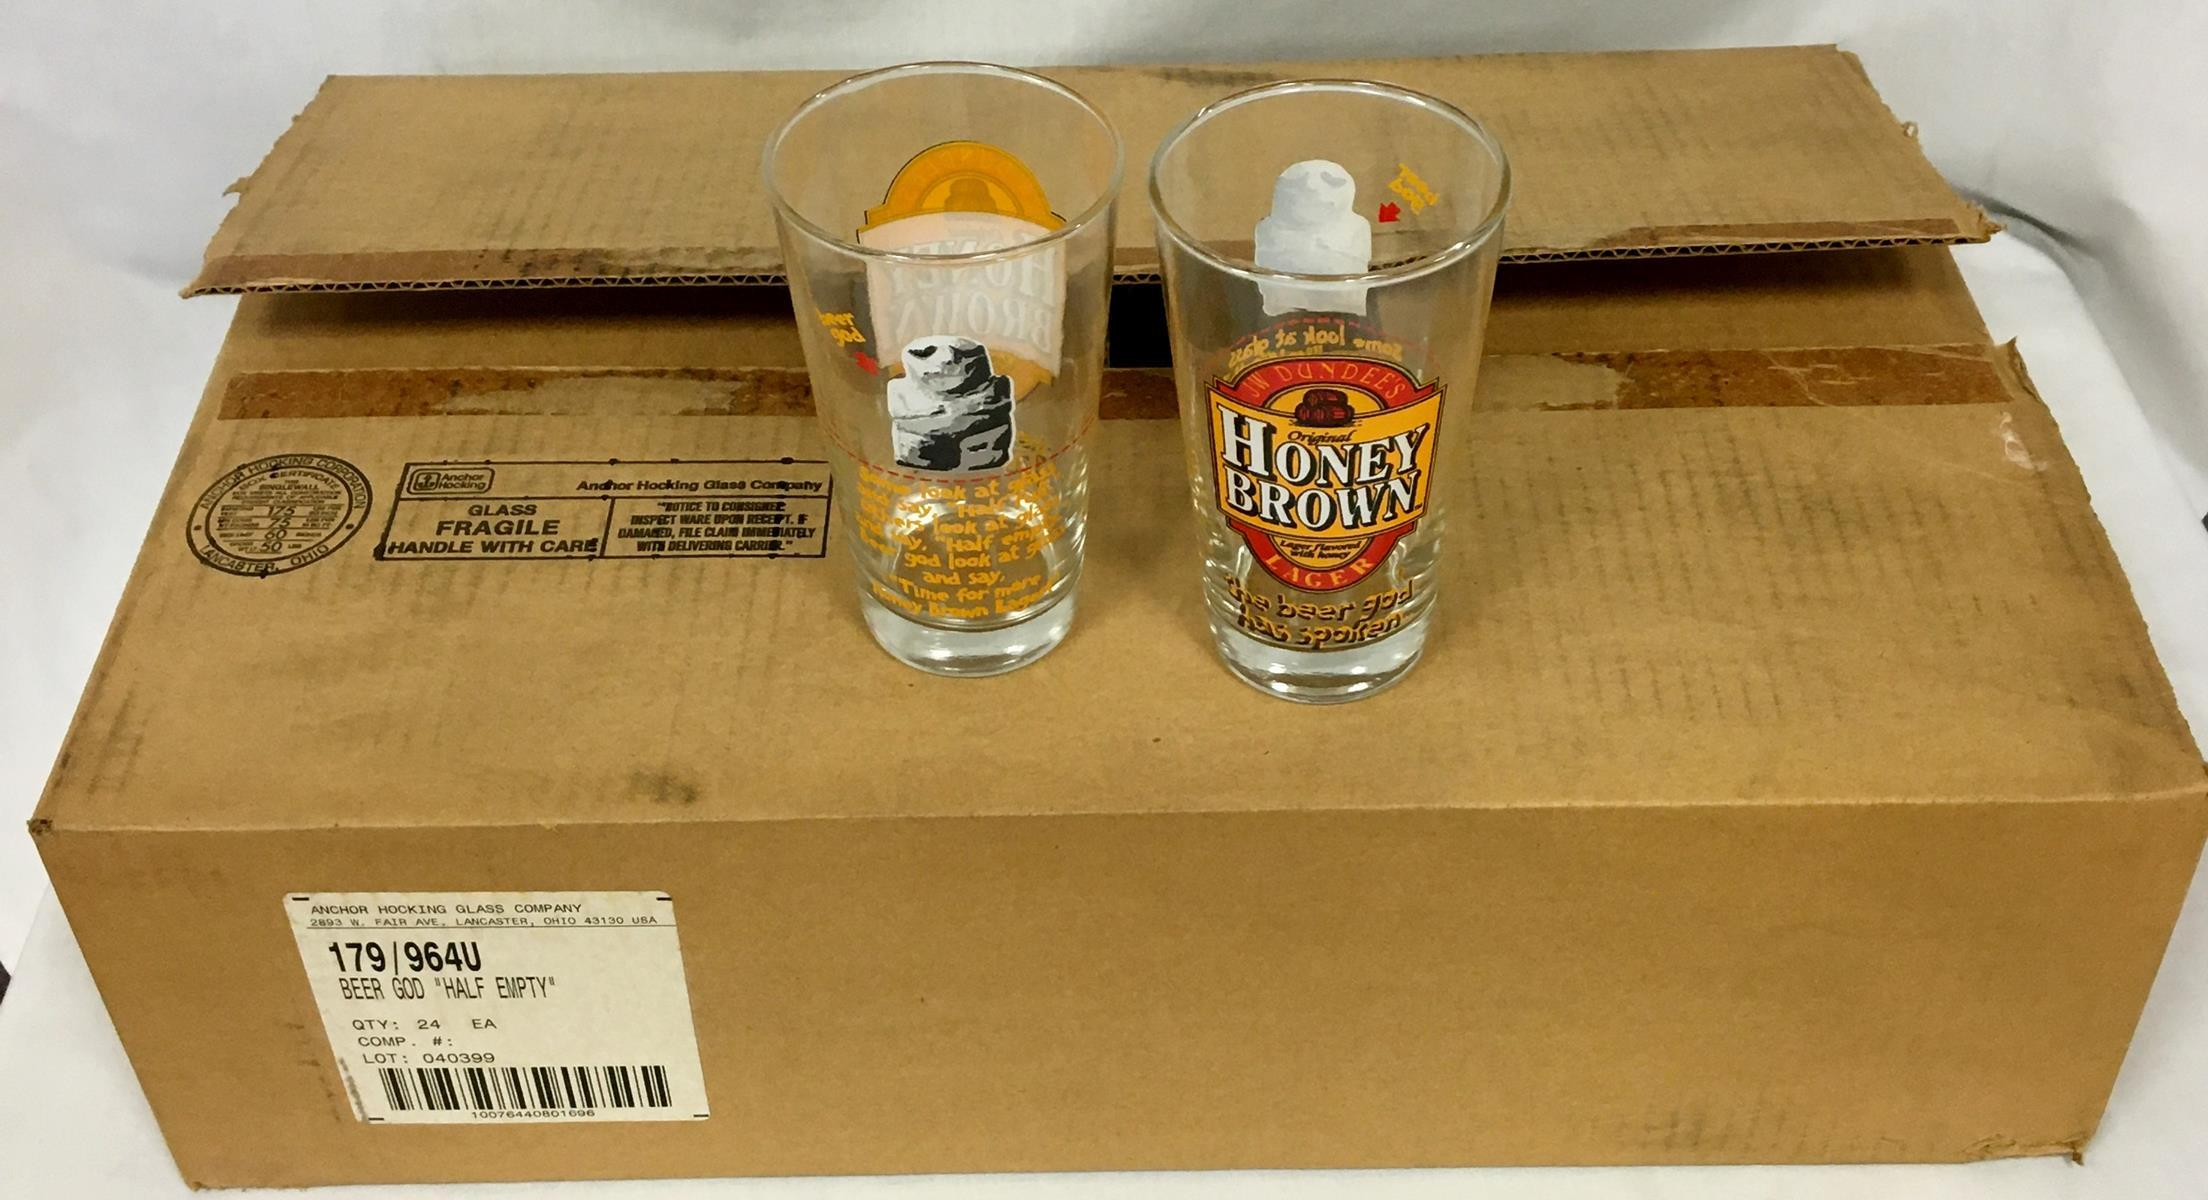 """JW Dundee's Original Honey Brown Lager """"Beer God"""" 16 oz. Pint Glass 24 ct Case NEW OLD STOCK"""